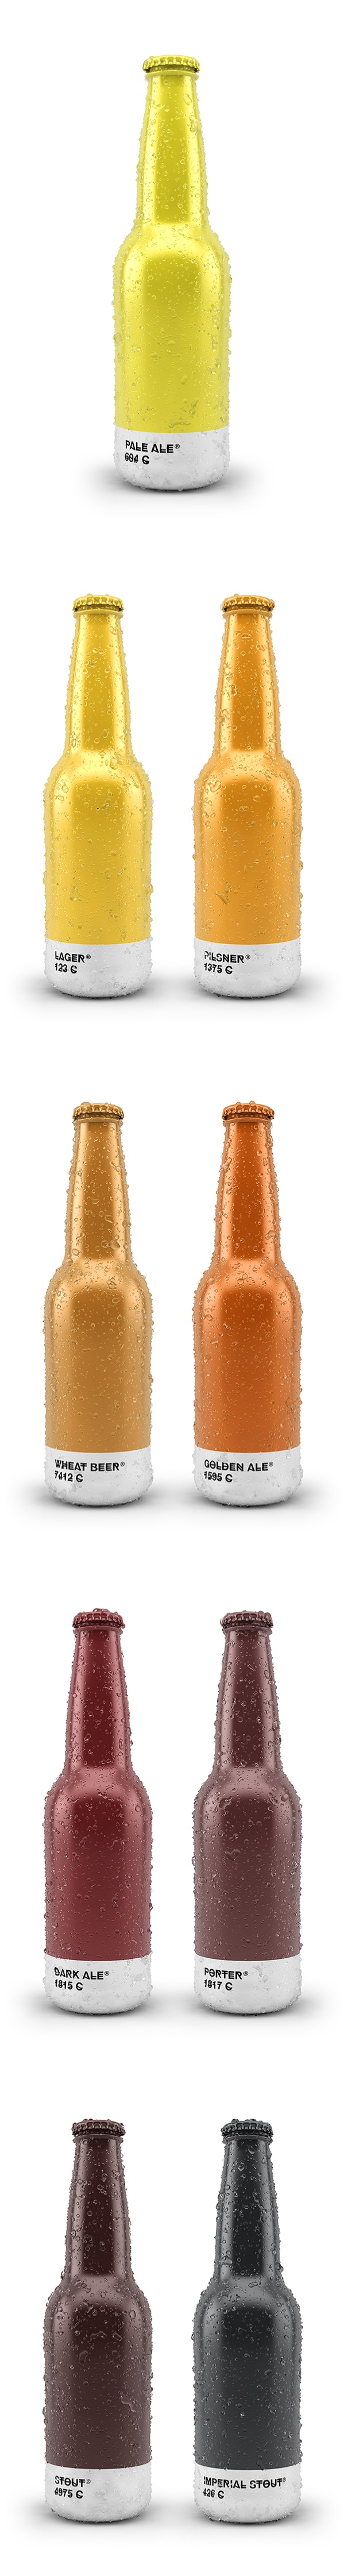 Beer+Colors+Bottles.jpg